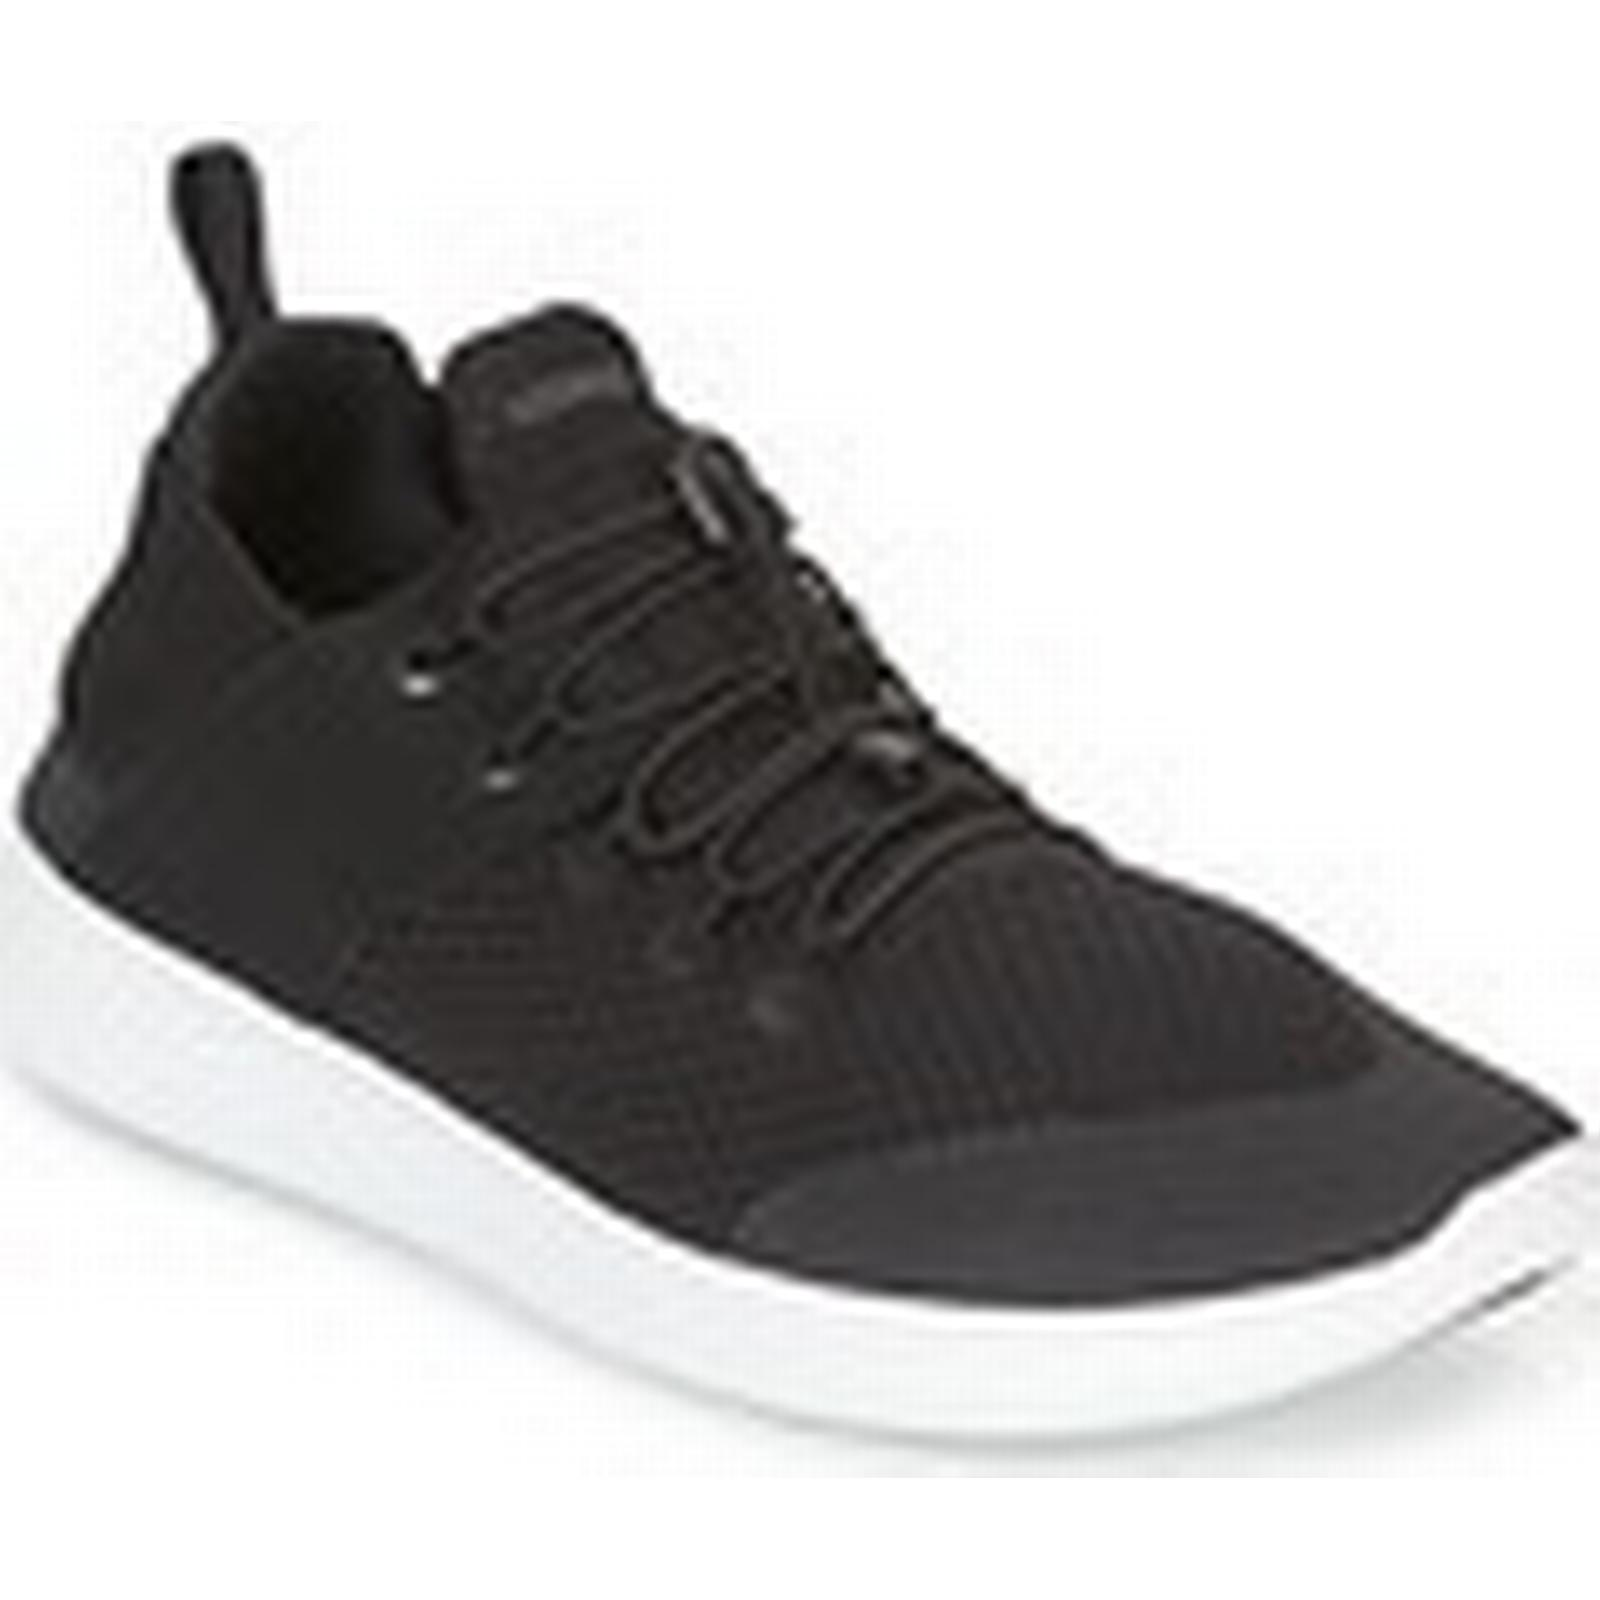 e73ebe0fd23a ... coupon for nike free run commuter 2017 black mens running trainers in  black a1ec12 3d9cd 51174